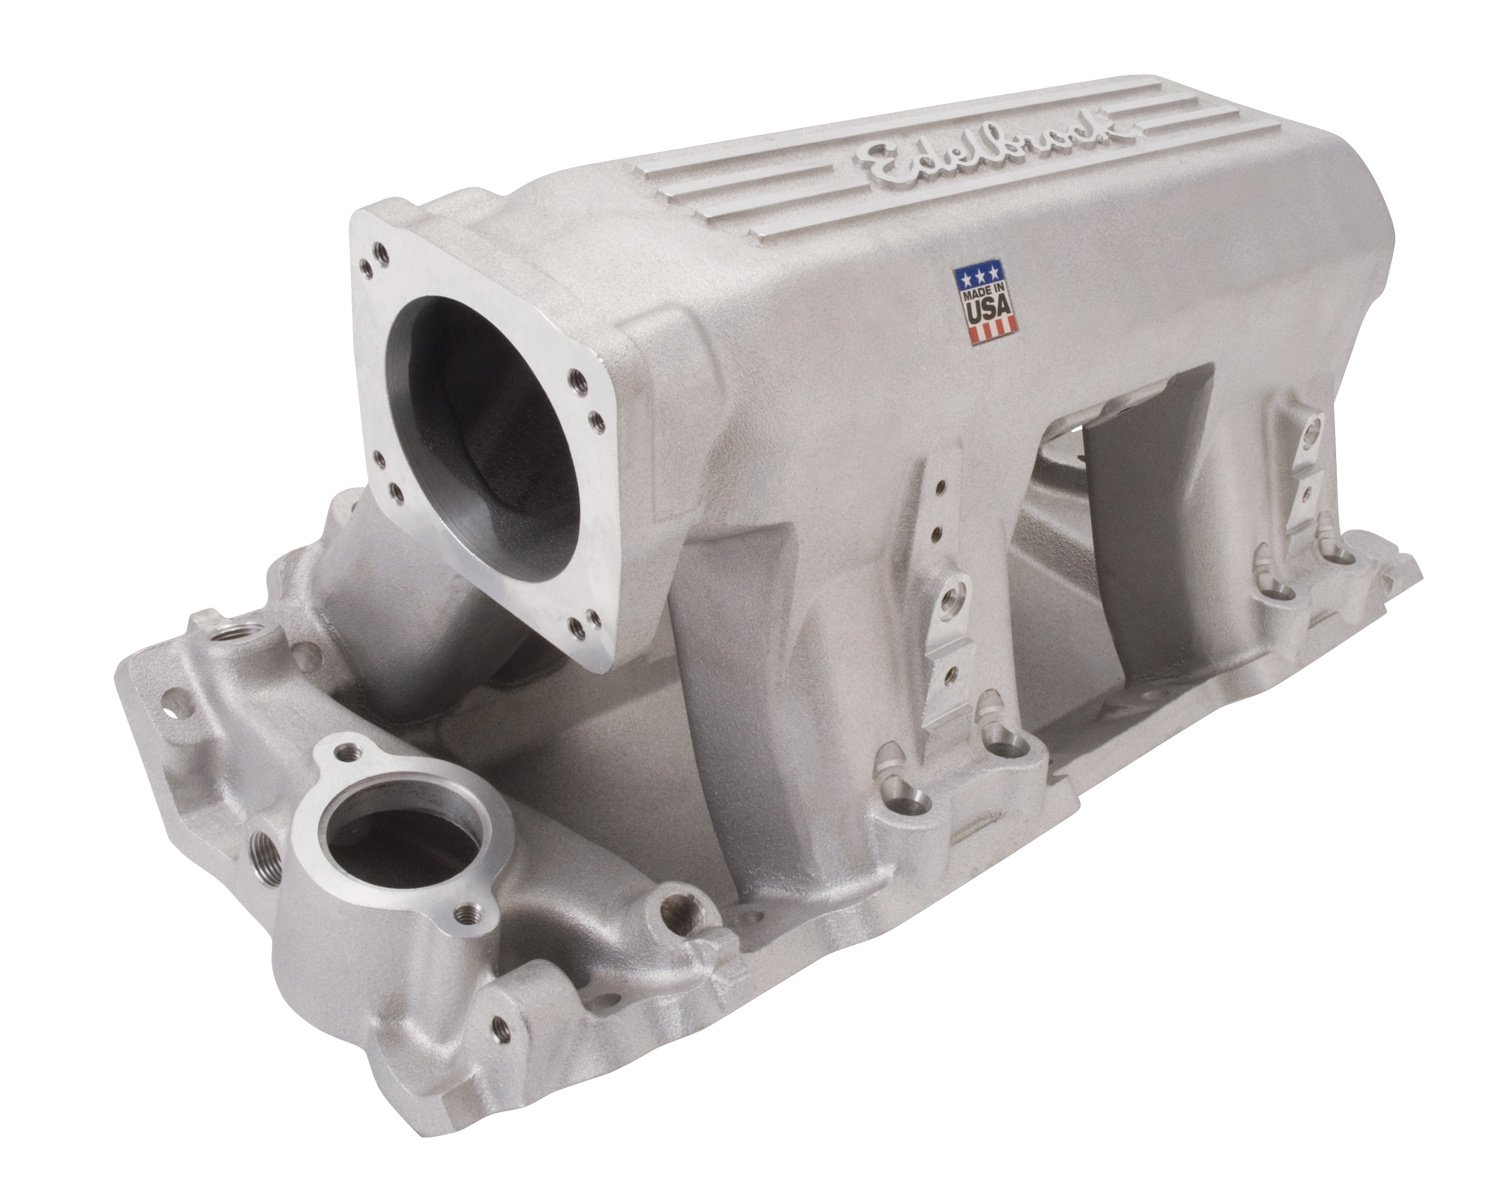 71fAtLdDdoL._SL1500_ amazon com edelbrock 7136 pro flo xt manifold efi for big block Edelbrock Crate Engines at nearapp.co